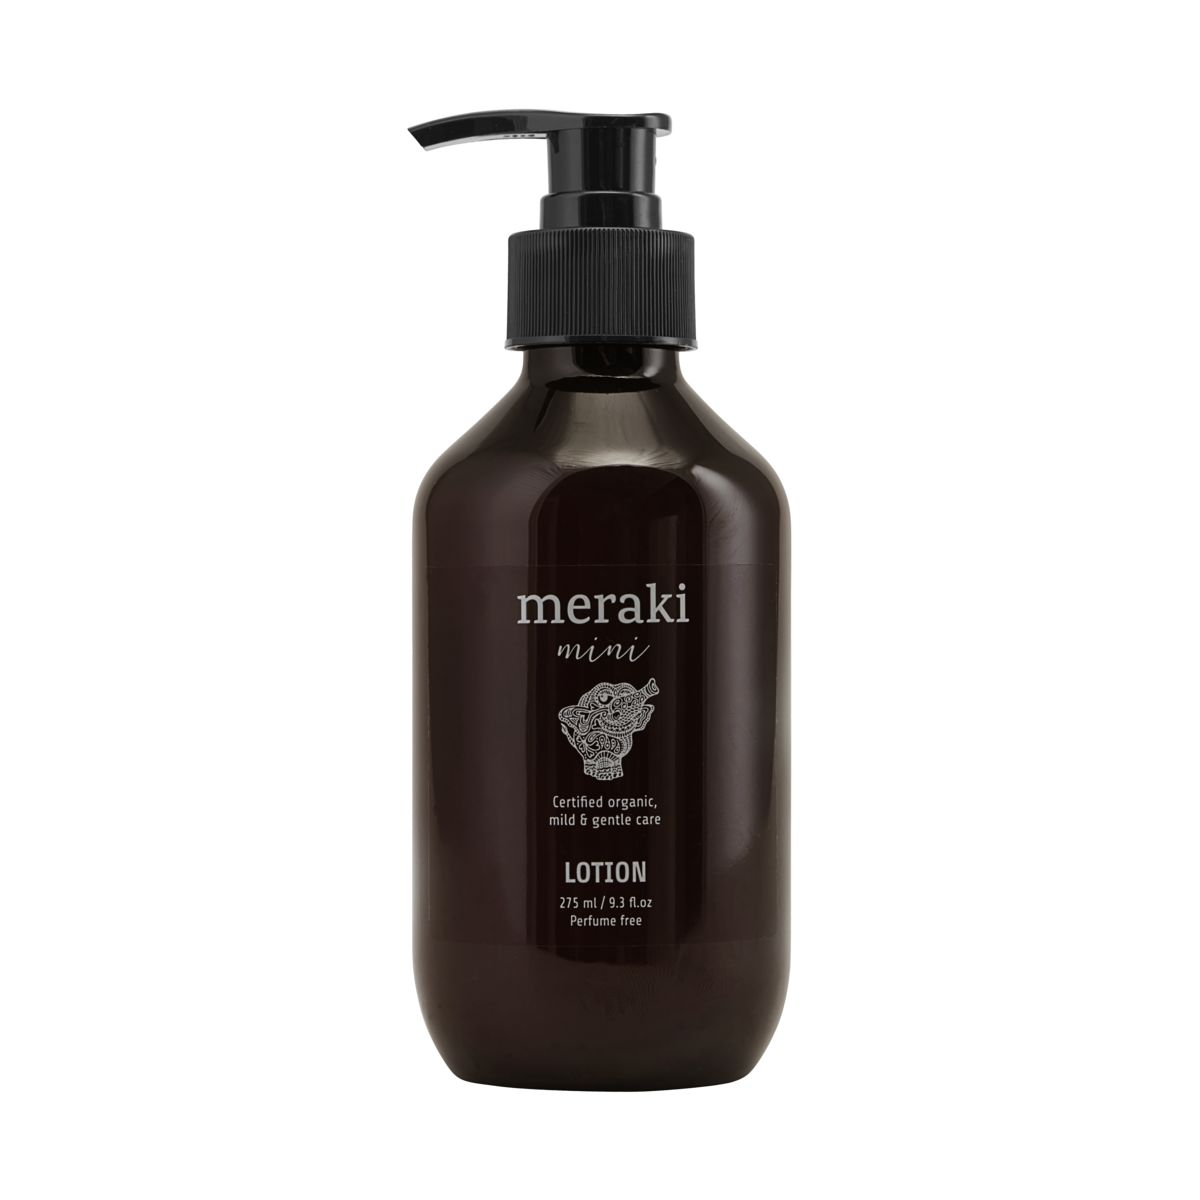 Image of   Lotion, Meraki mini, 275 ml/ 9.3 fl.oz